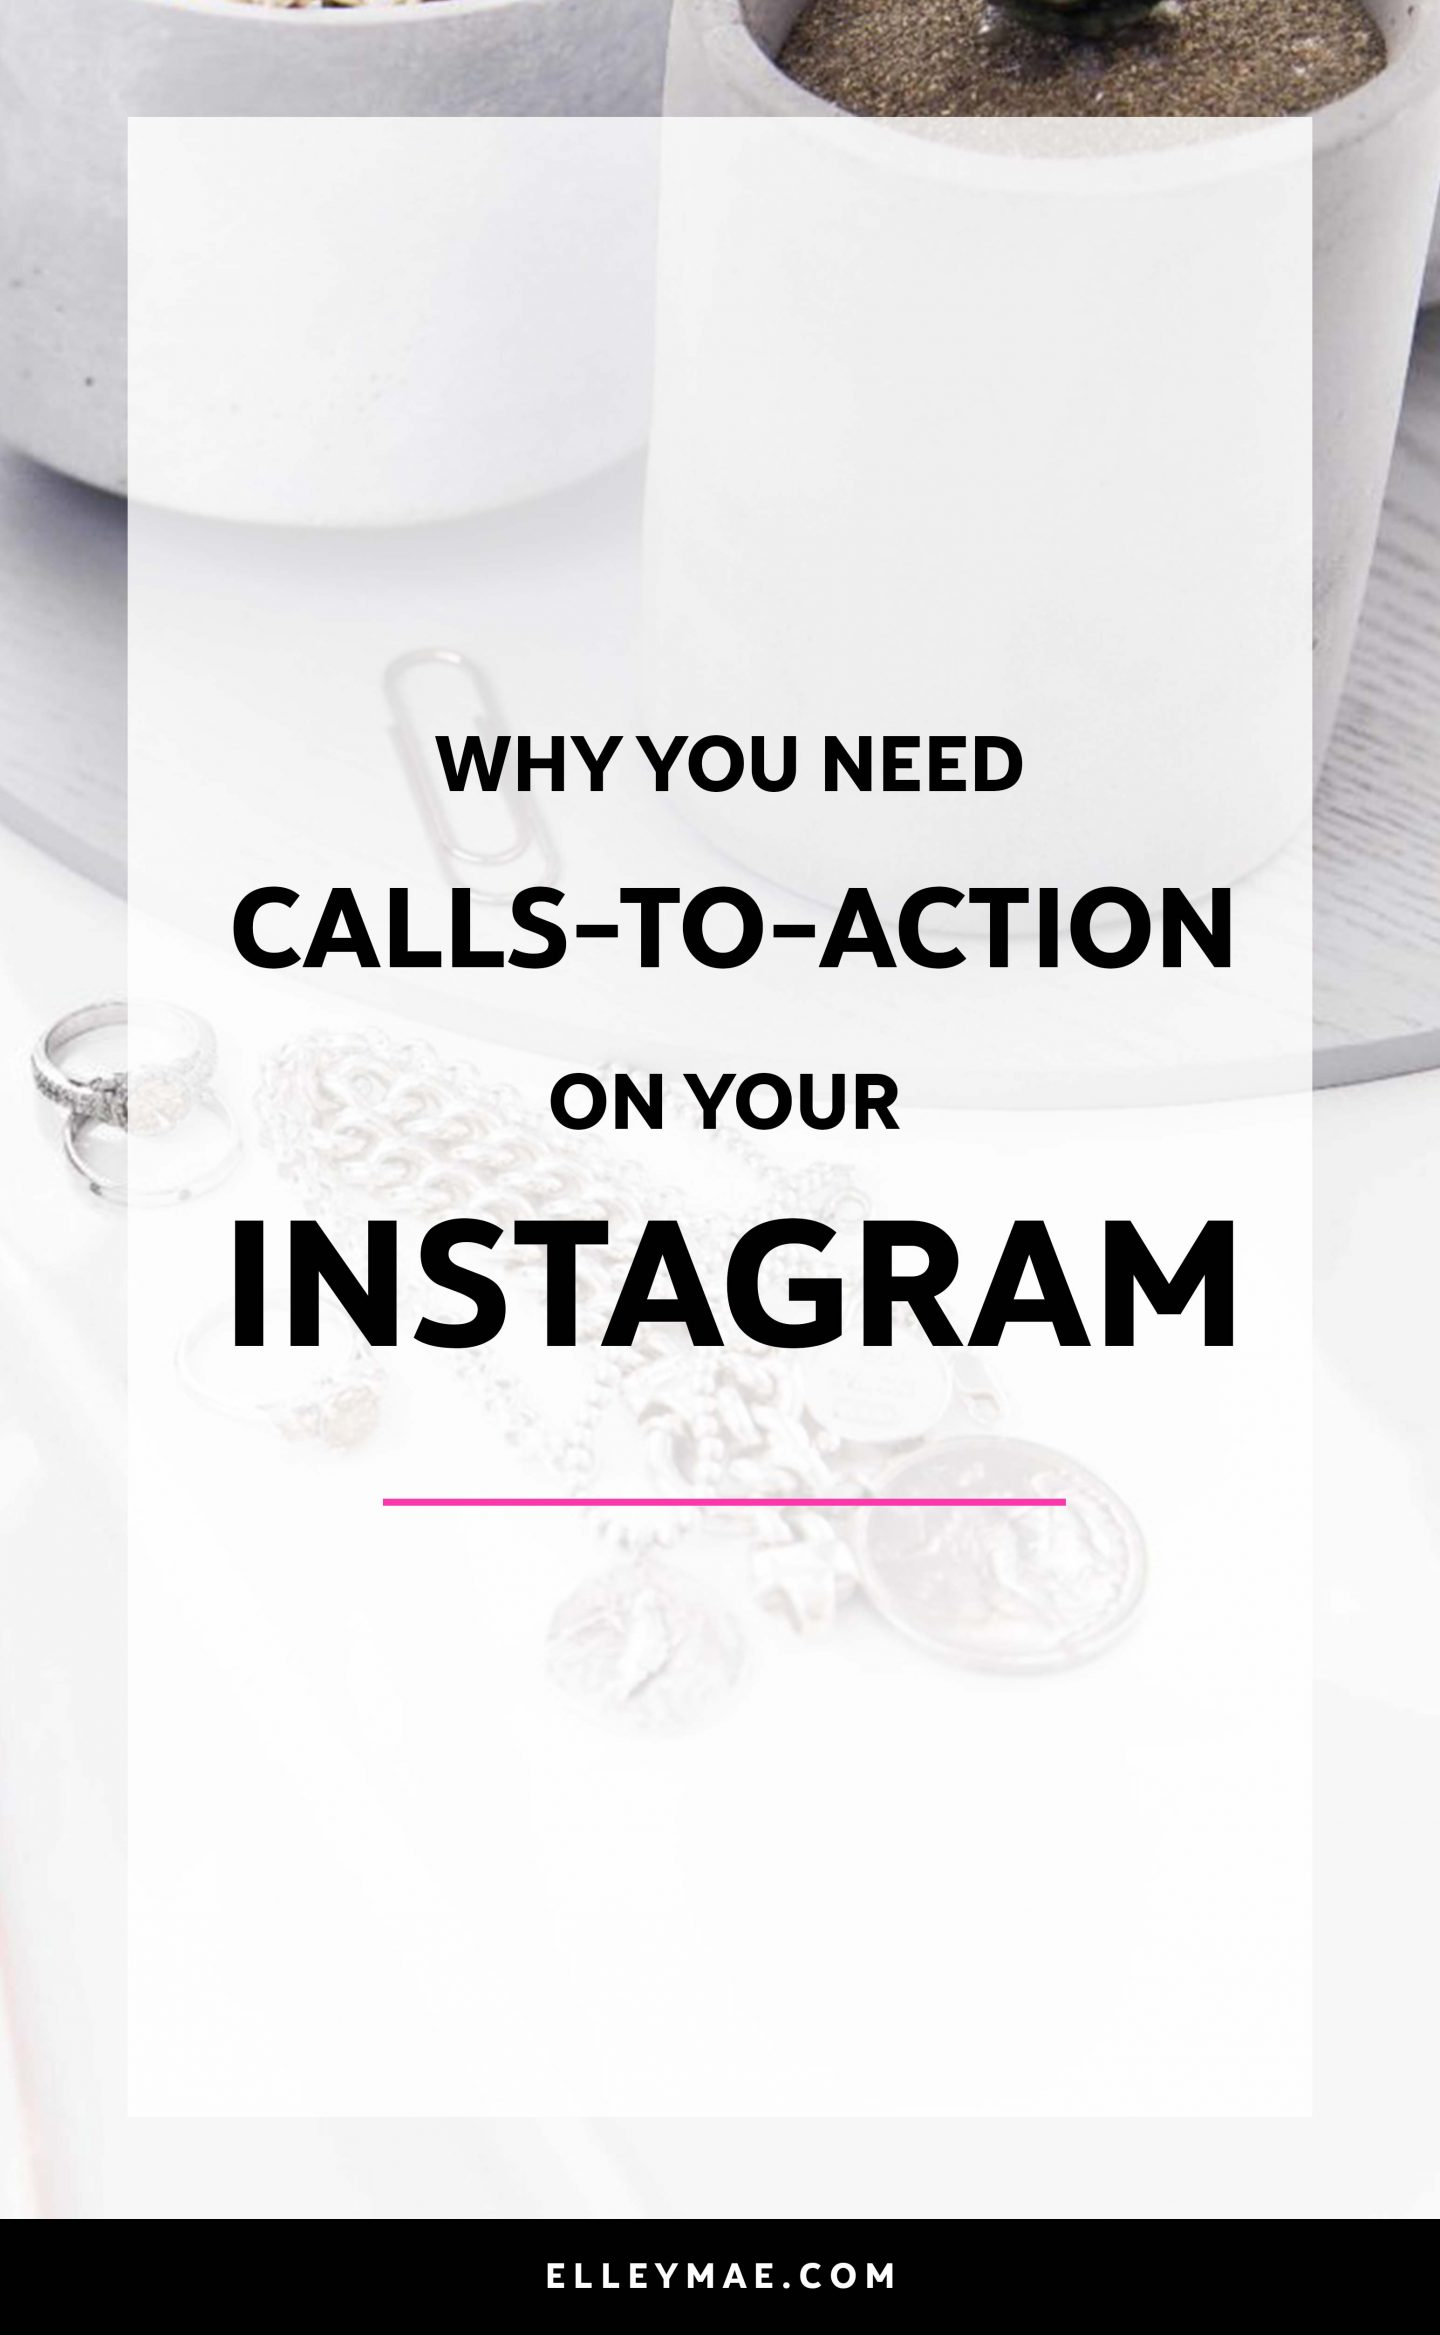 Are you sick of creating wicked Instagram captions that are ultimately actually doing NOTHING to your engagement?! Yep, I've been there. Writing Instagram captions doesn't have to be as difficult as it's made out to be - in fact, by using call-to-actions in your Instagram captions, you're bound to increase your engagement, build trust with your audience & possibly even make sales! Can I get a boo-yeah?! So, click to learn more about call-to-actions on Instagram and why they can turn your Insta around in a flash! ElleyMae.com